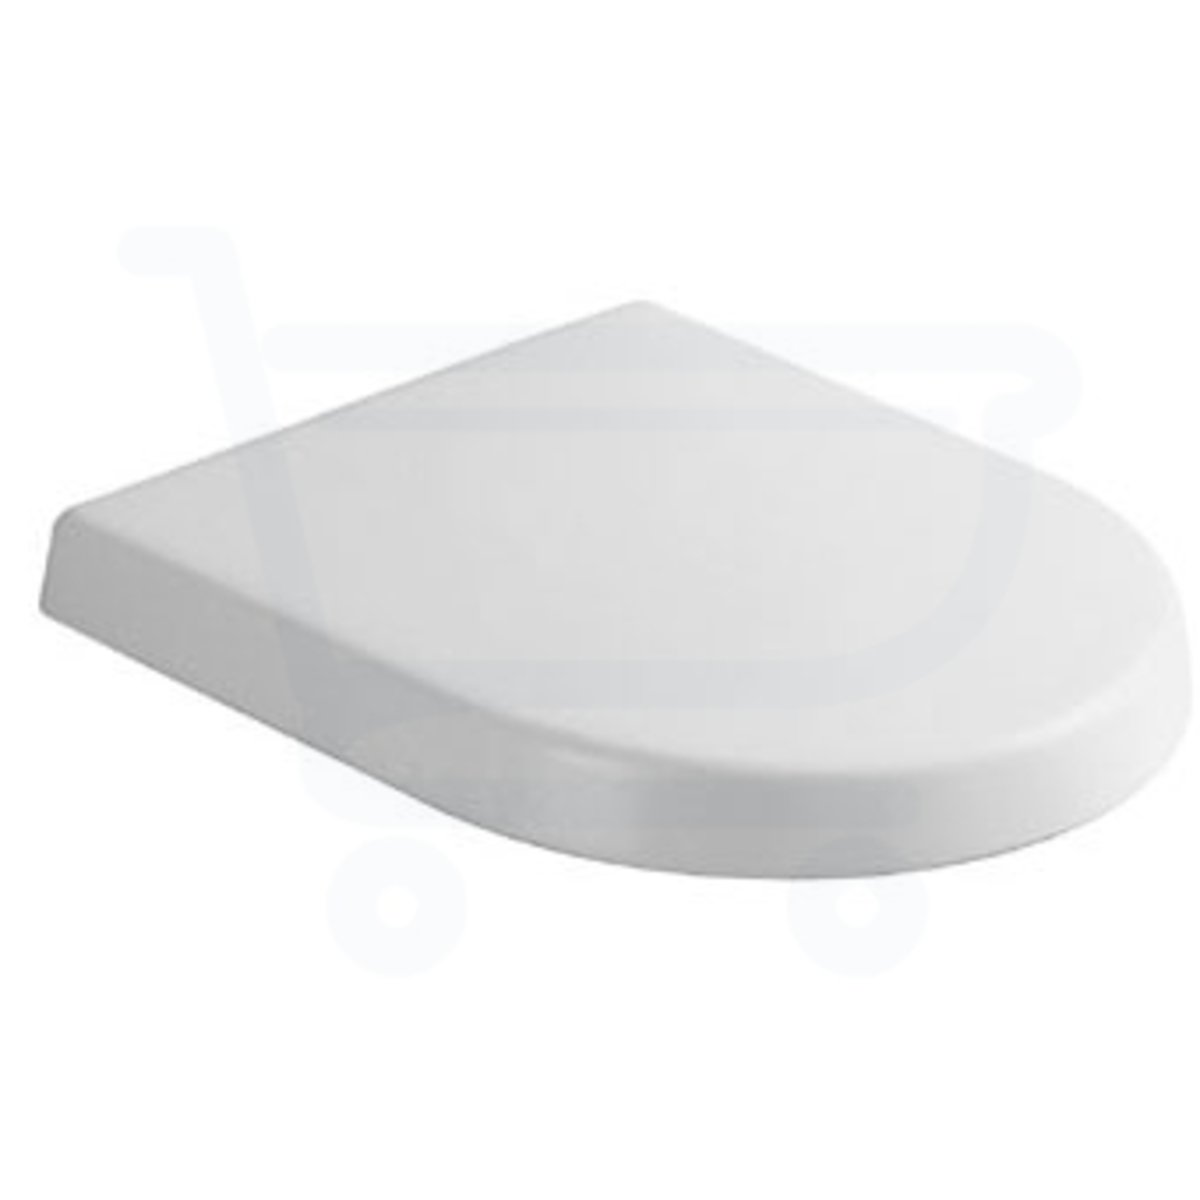 Villeroy Boch Subway Wc Suspendu à Fond Plat Ceramic